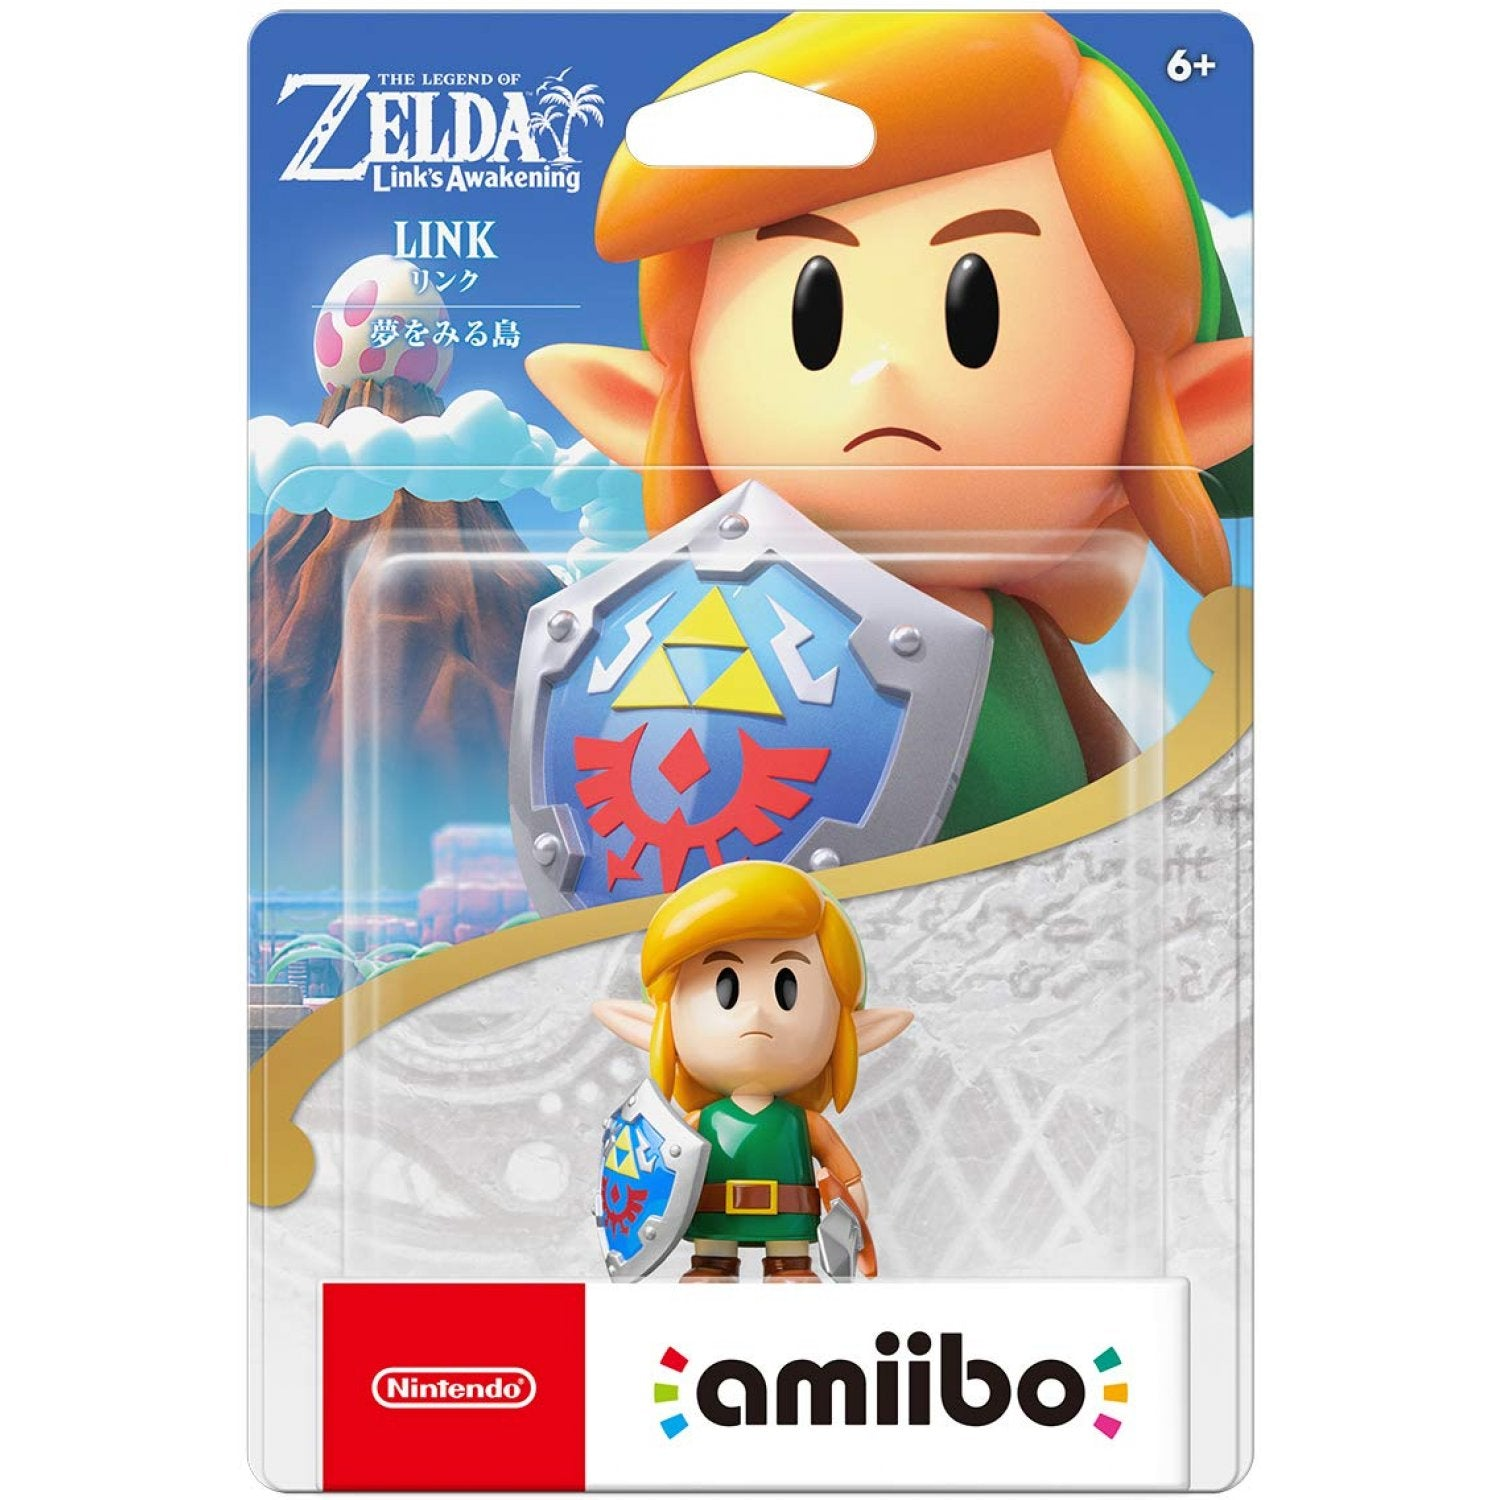 Amiibo The Legend of Zelda Series (Link) [Island of Dreams]